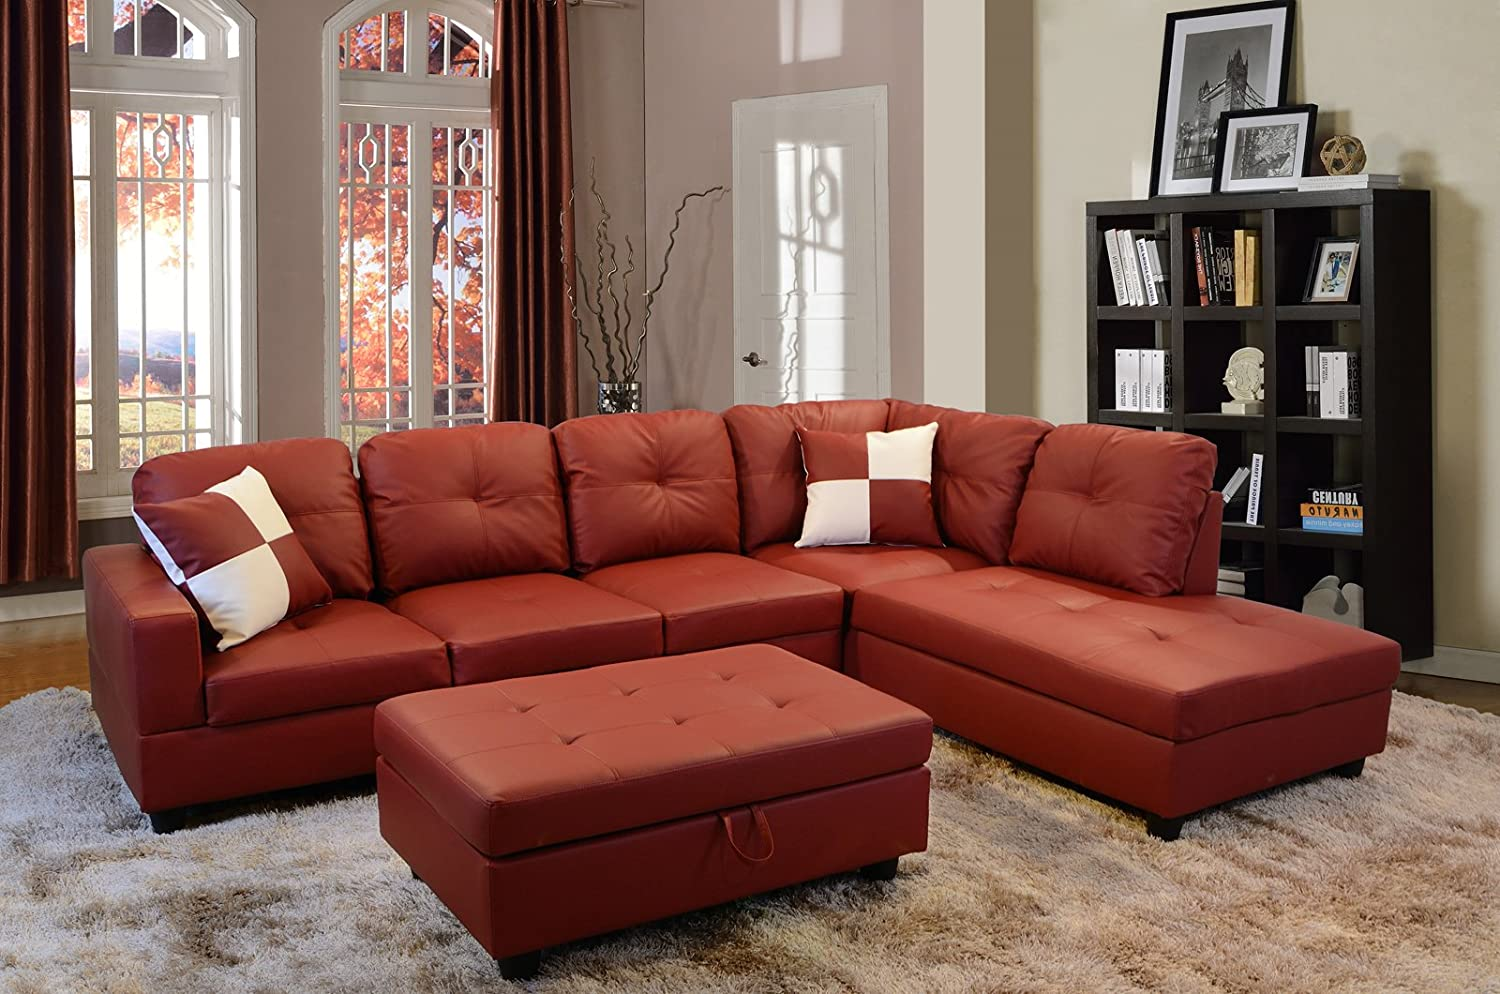 Lifestyle sectional sofa sets for living room